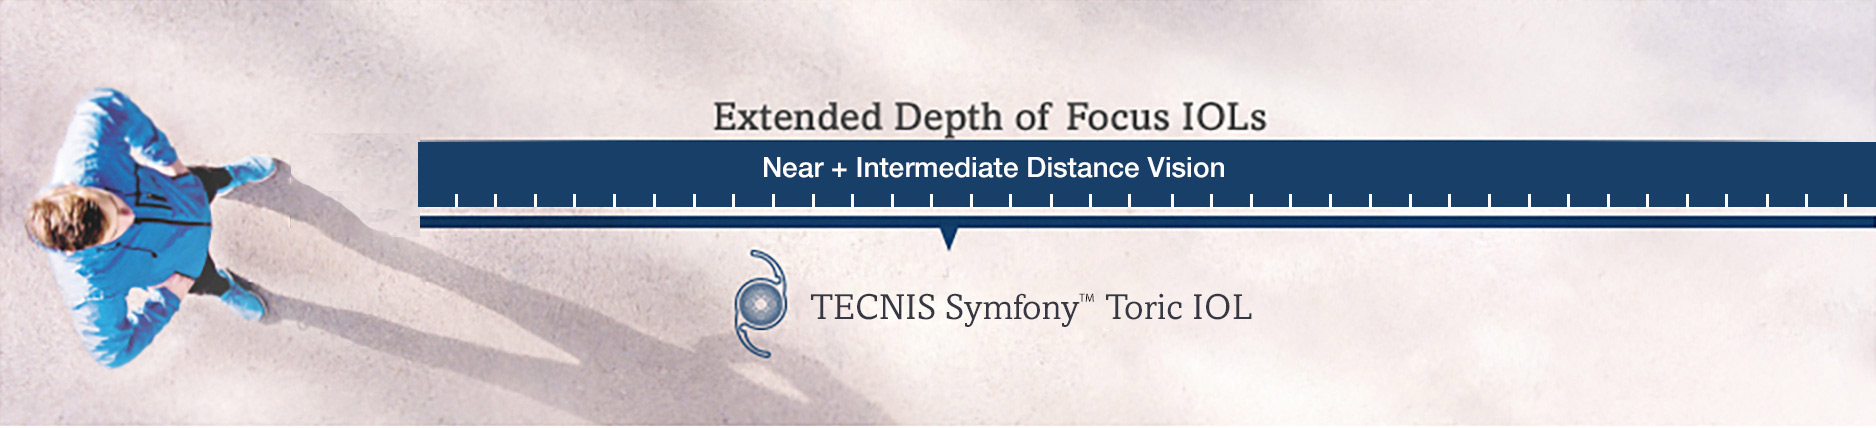 Man showing intermediate vision and distance visual range of TECNIS® Symfony™ Toric IOL